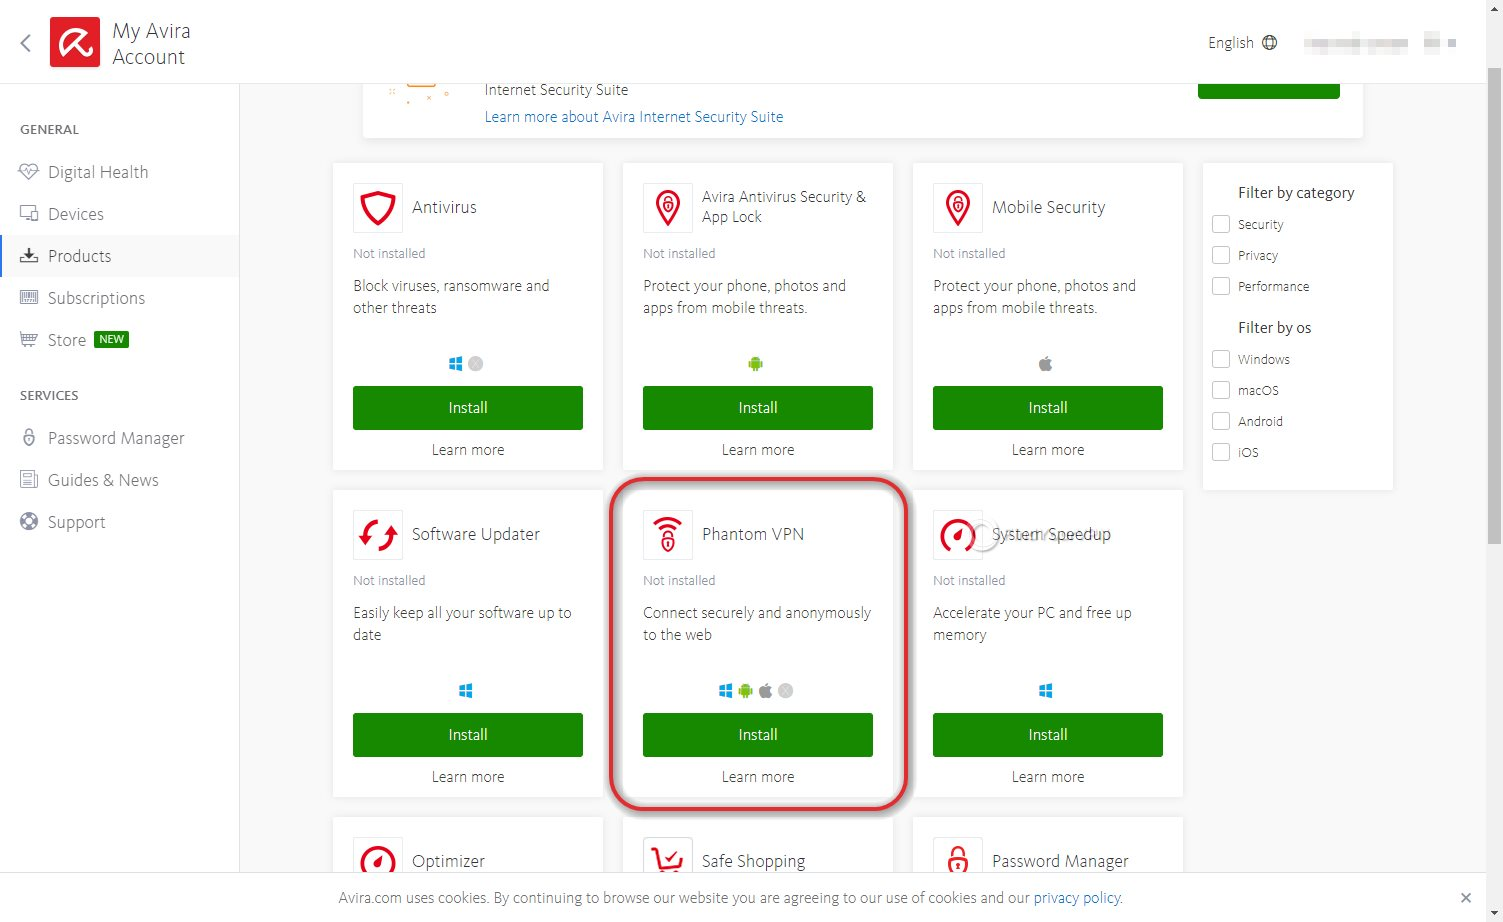 Downloading the Avira Phantom VPN Windows app